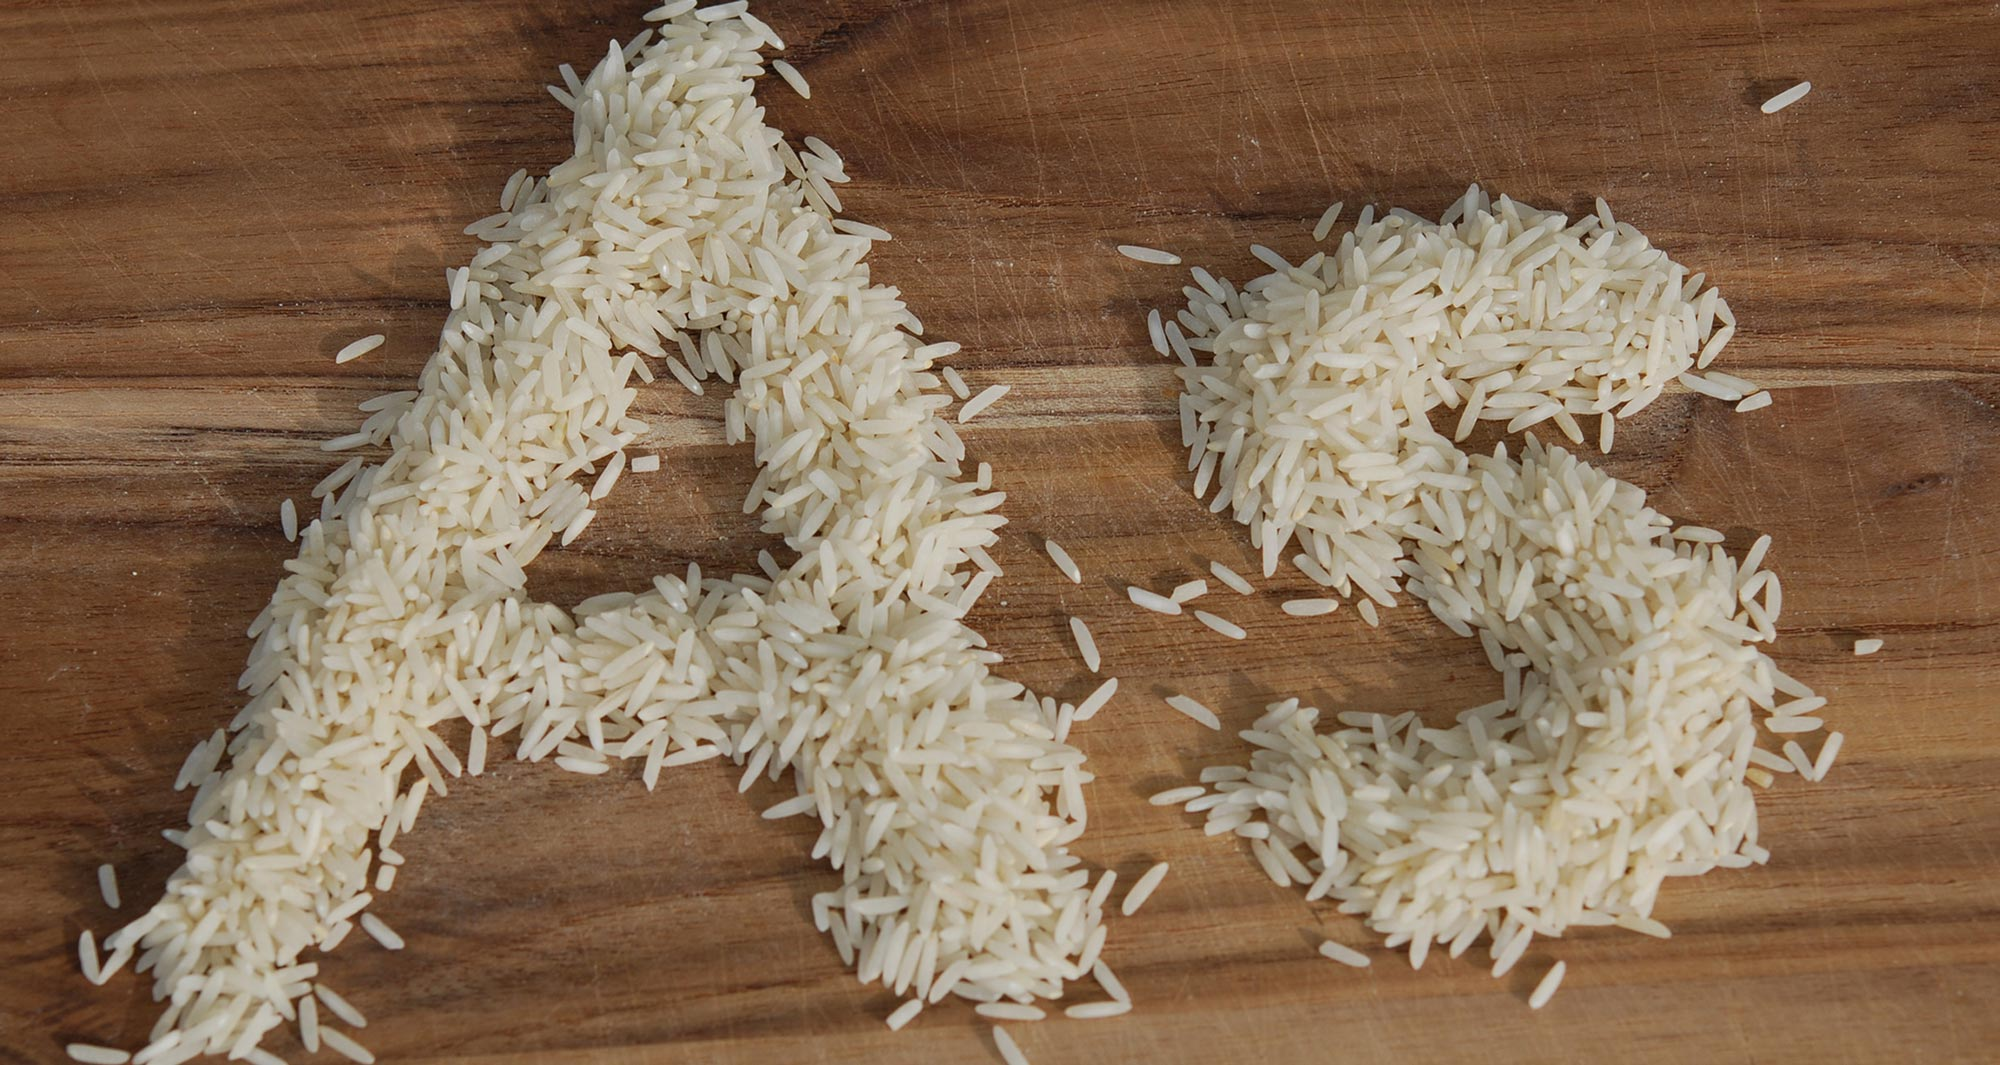 Arsenic in Rice: Everything You Need to Know to Stay Safe